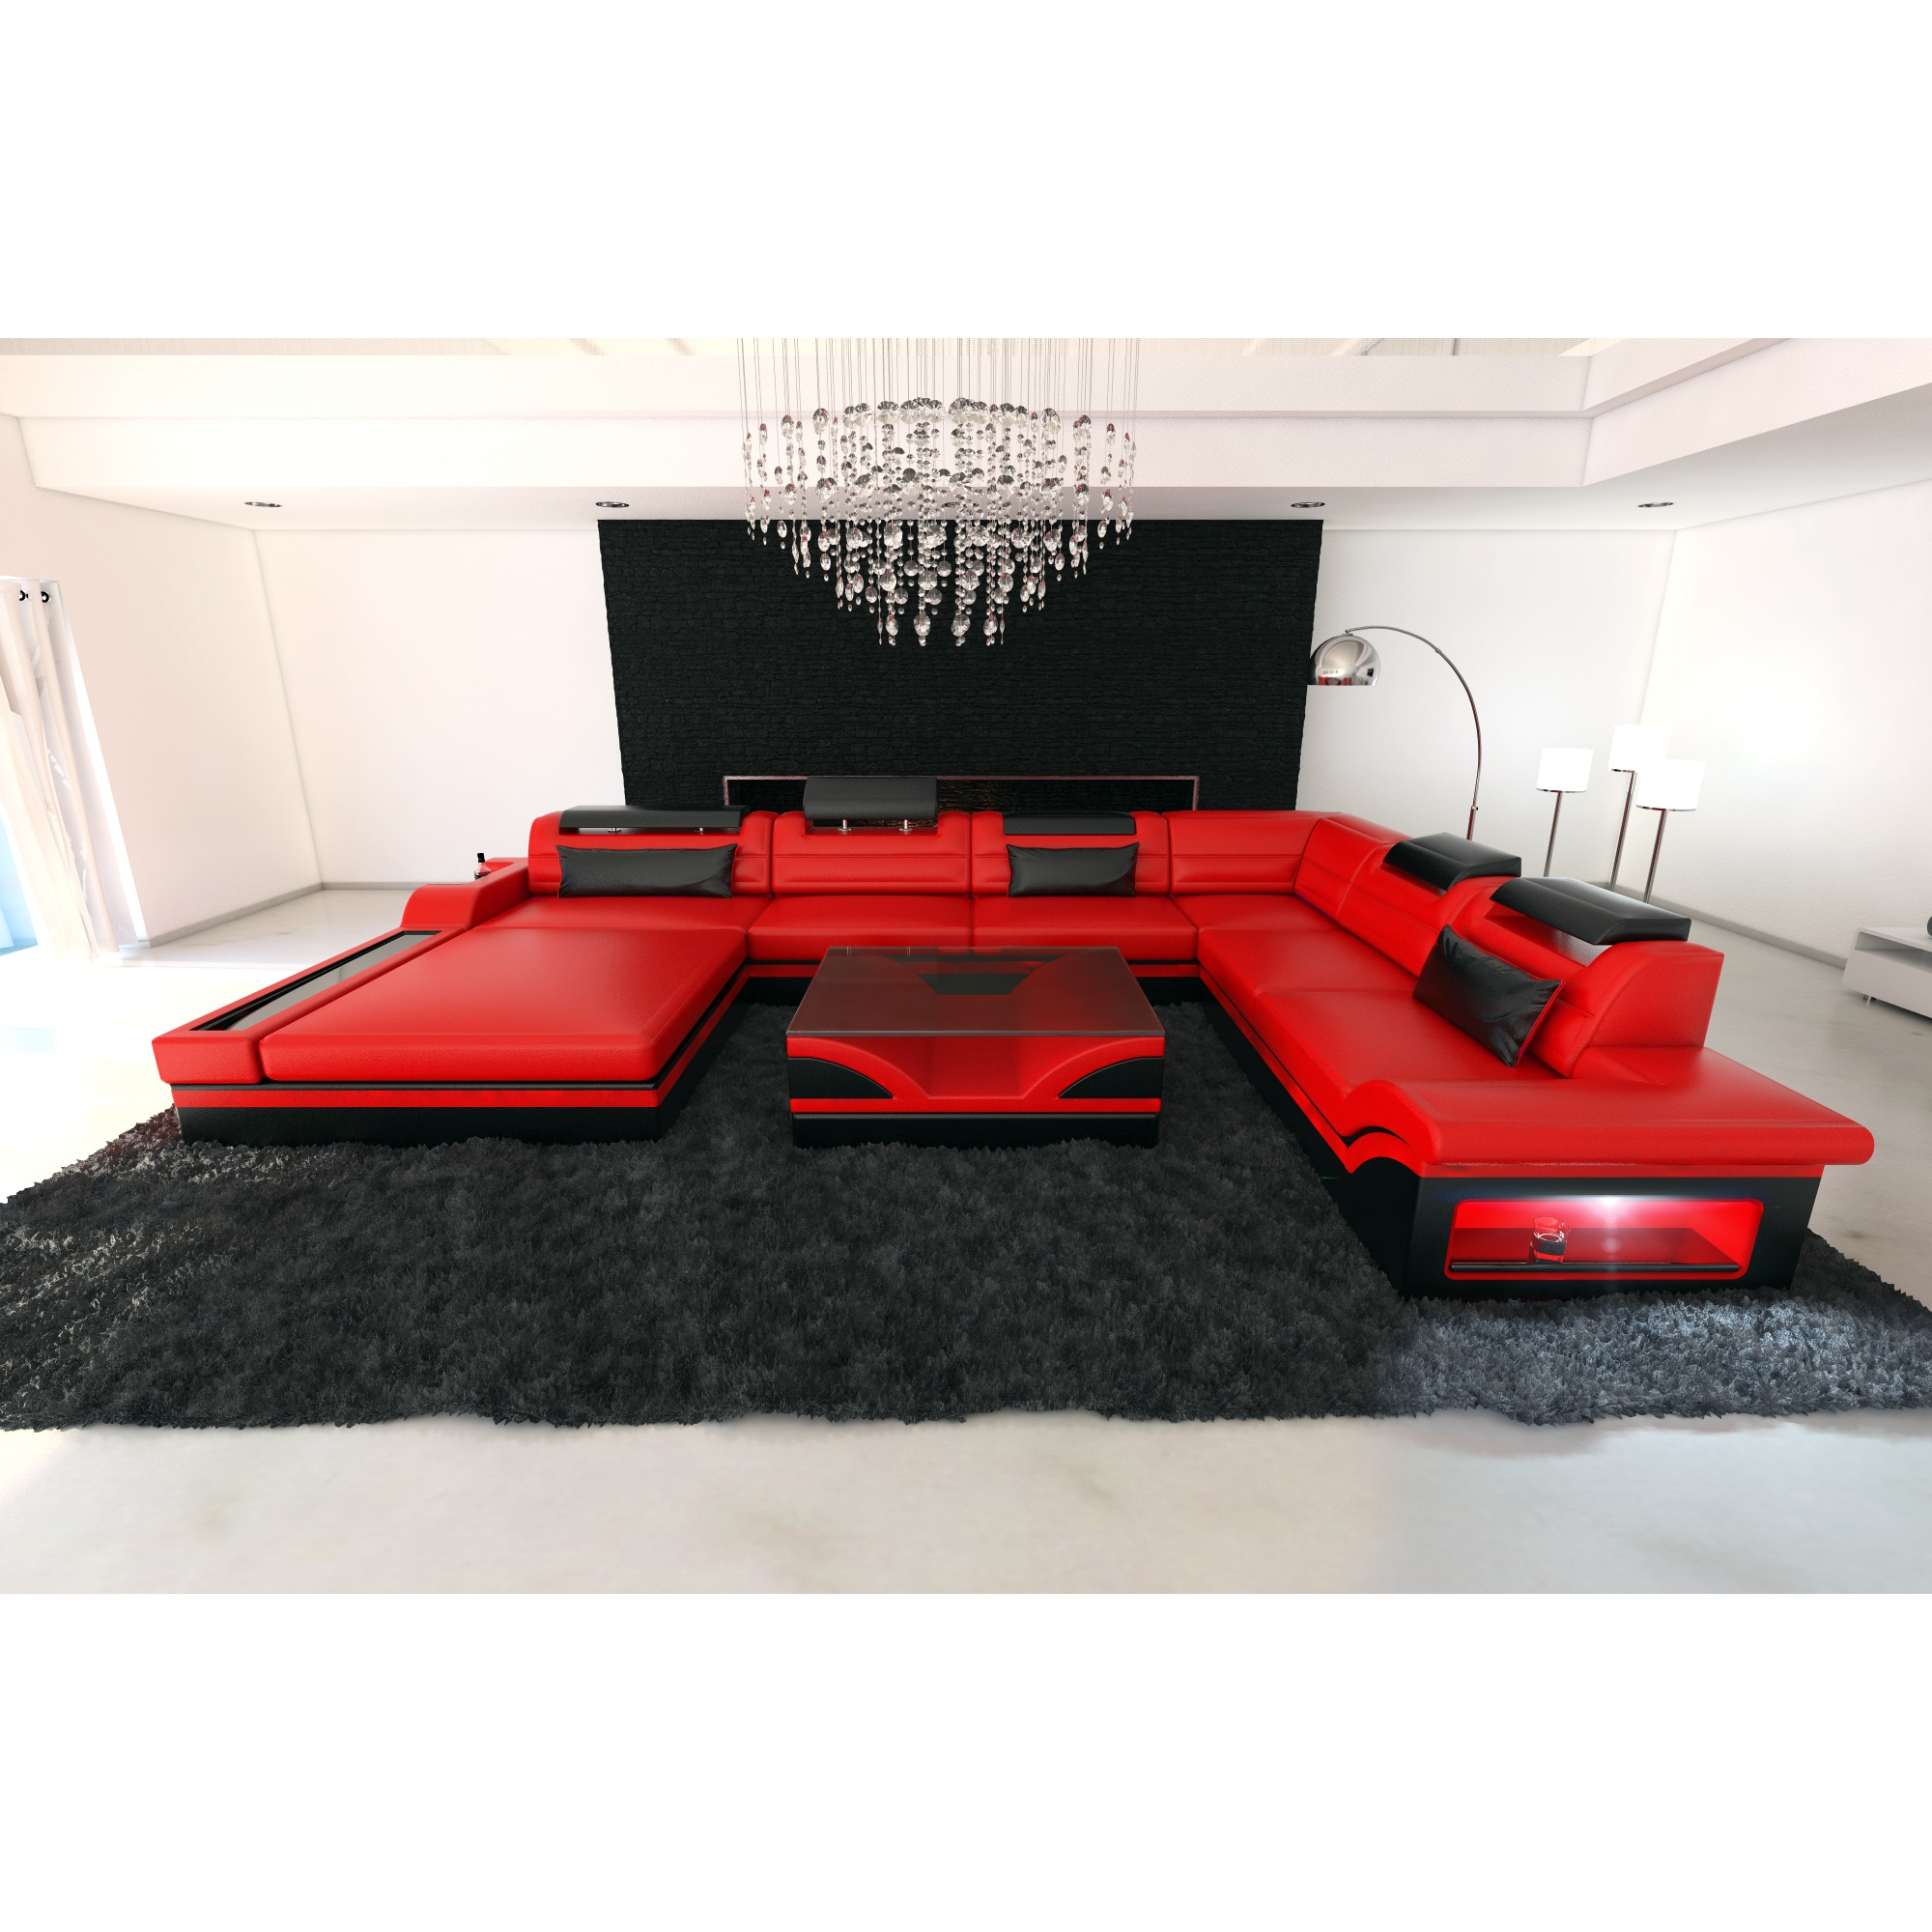 Buy Red Sectional Sofas Online at Overstock | Our Best ...